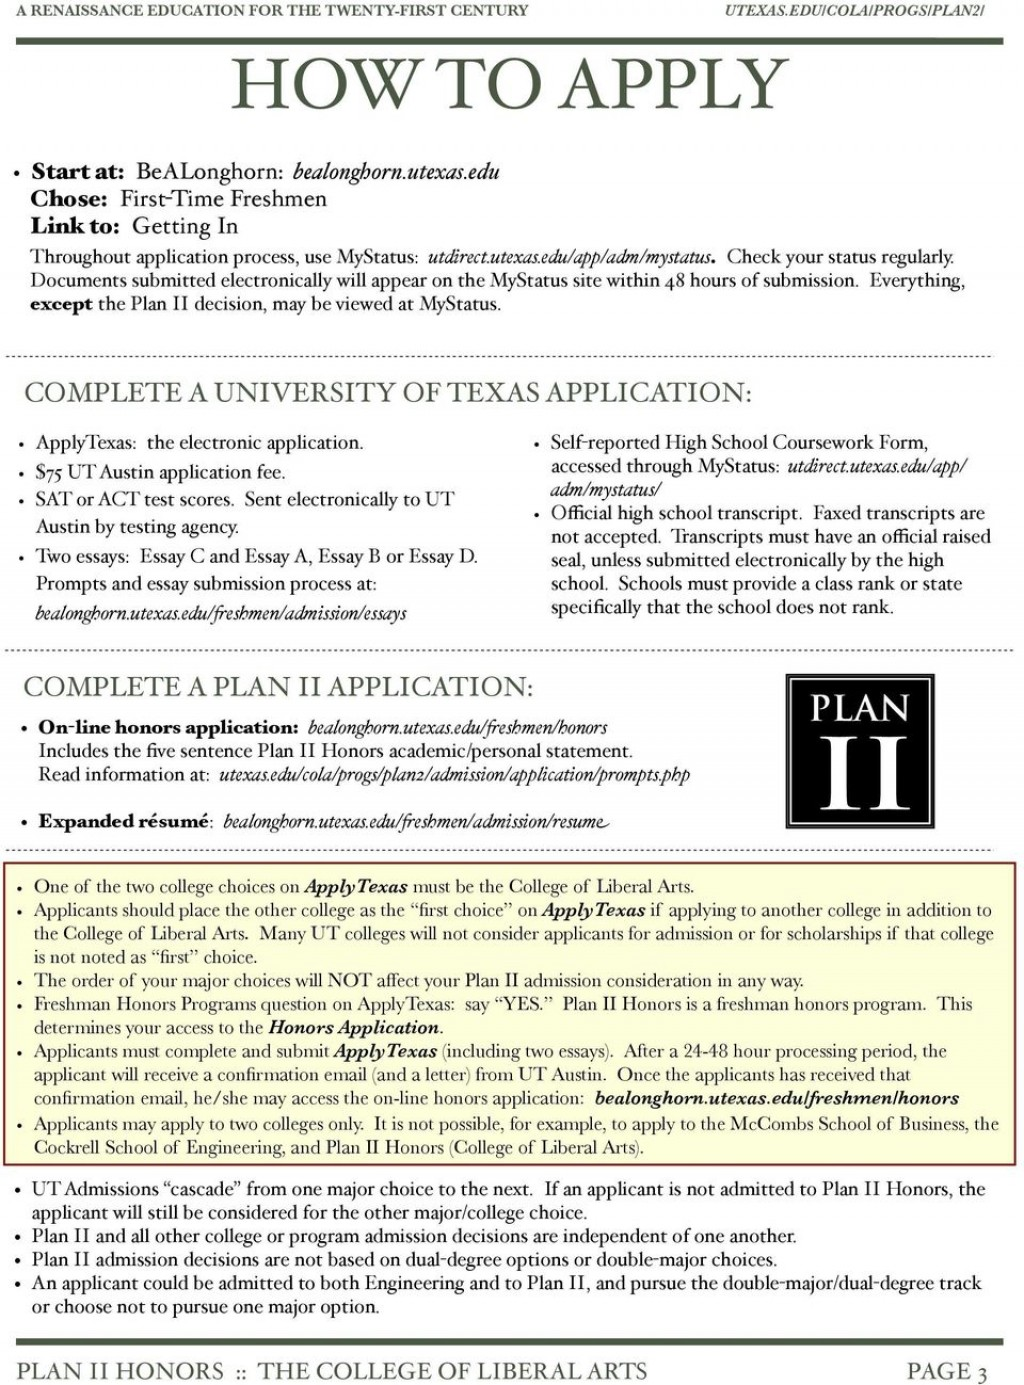 011 Page New Apply Texas Essays Topics Archaicawful Essay Application Fall 2018 Prompt C Example Large